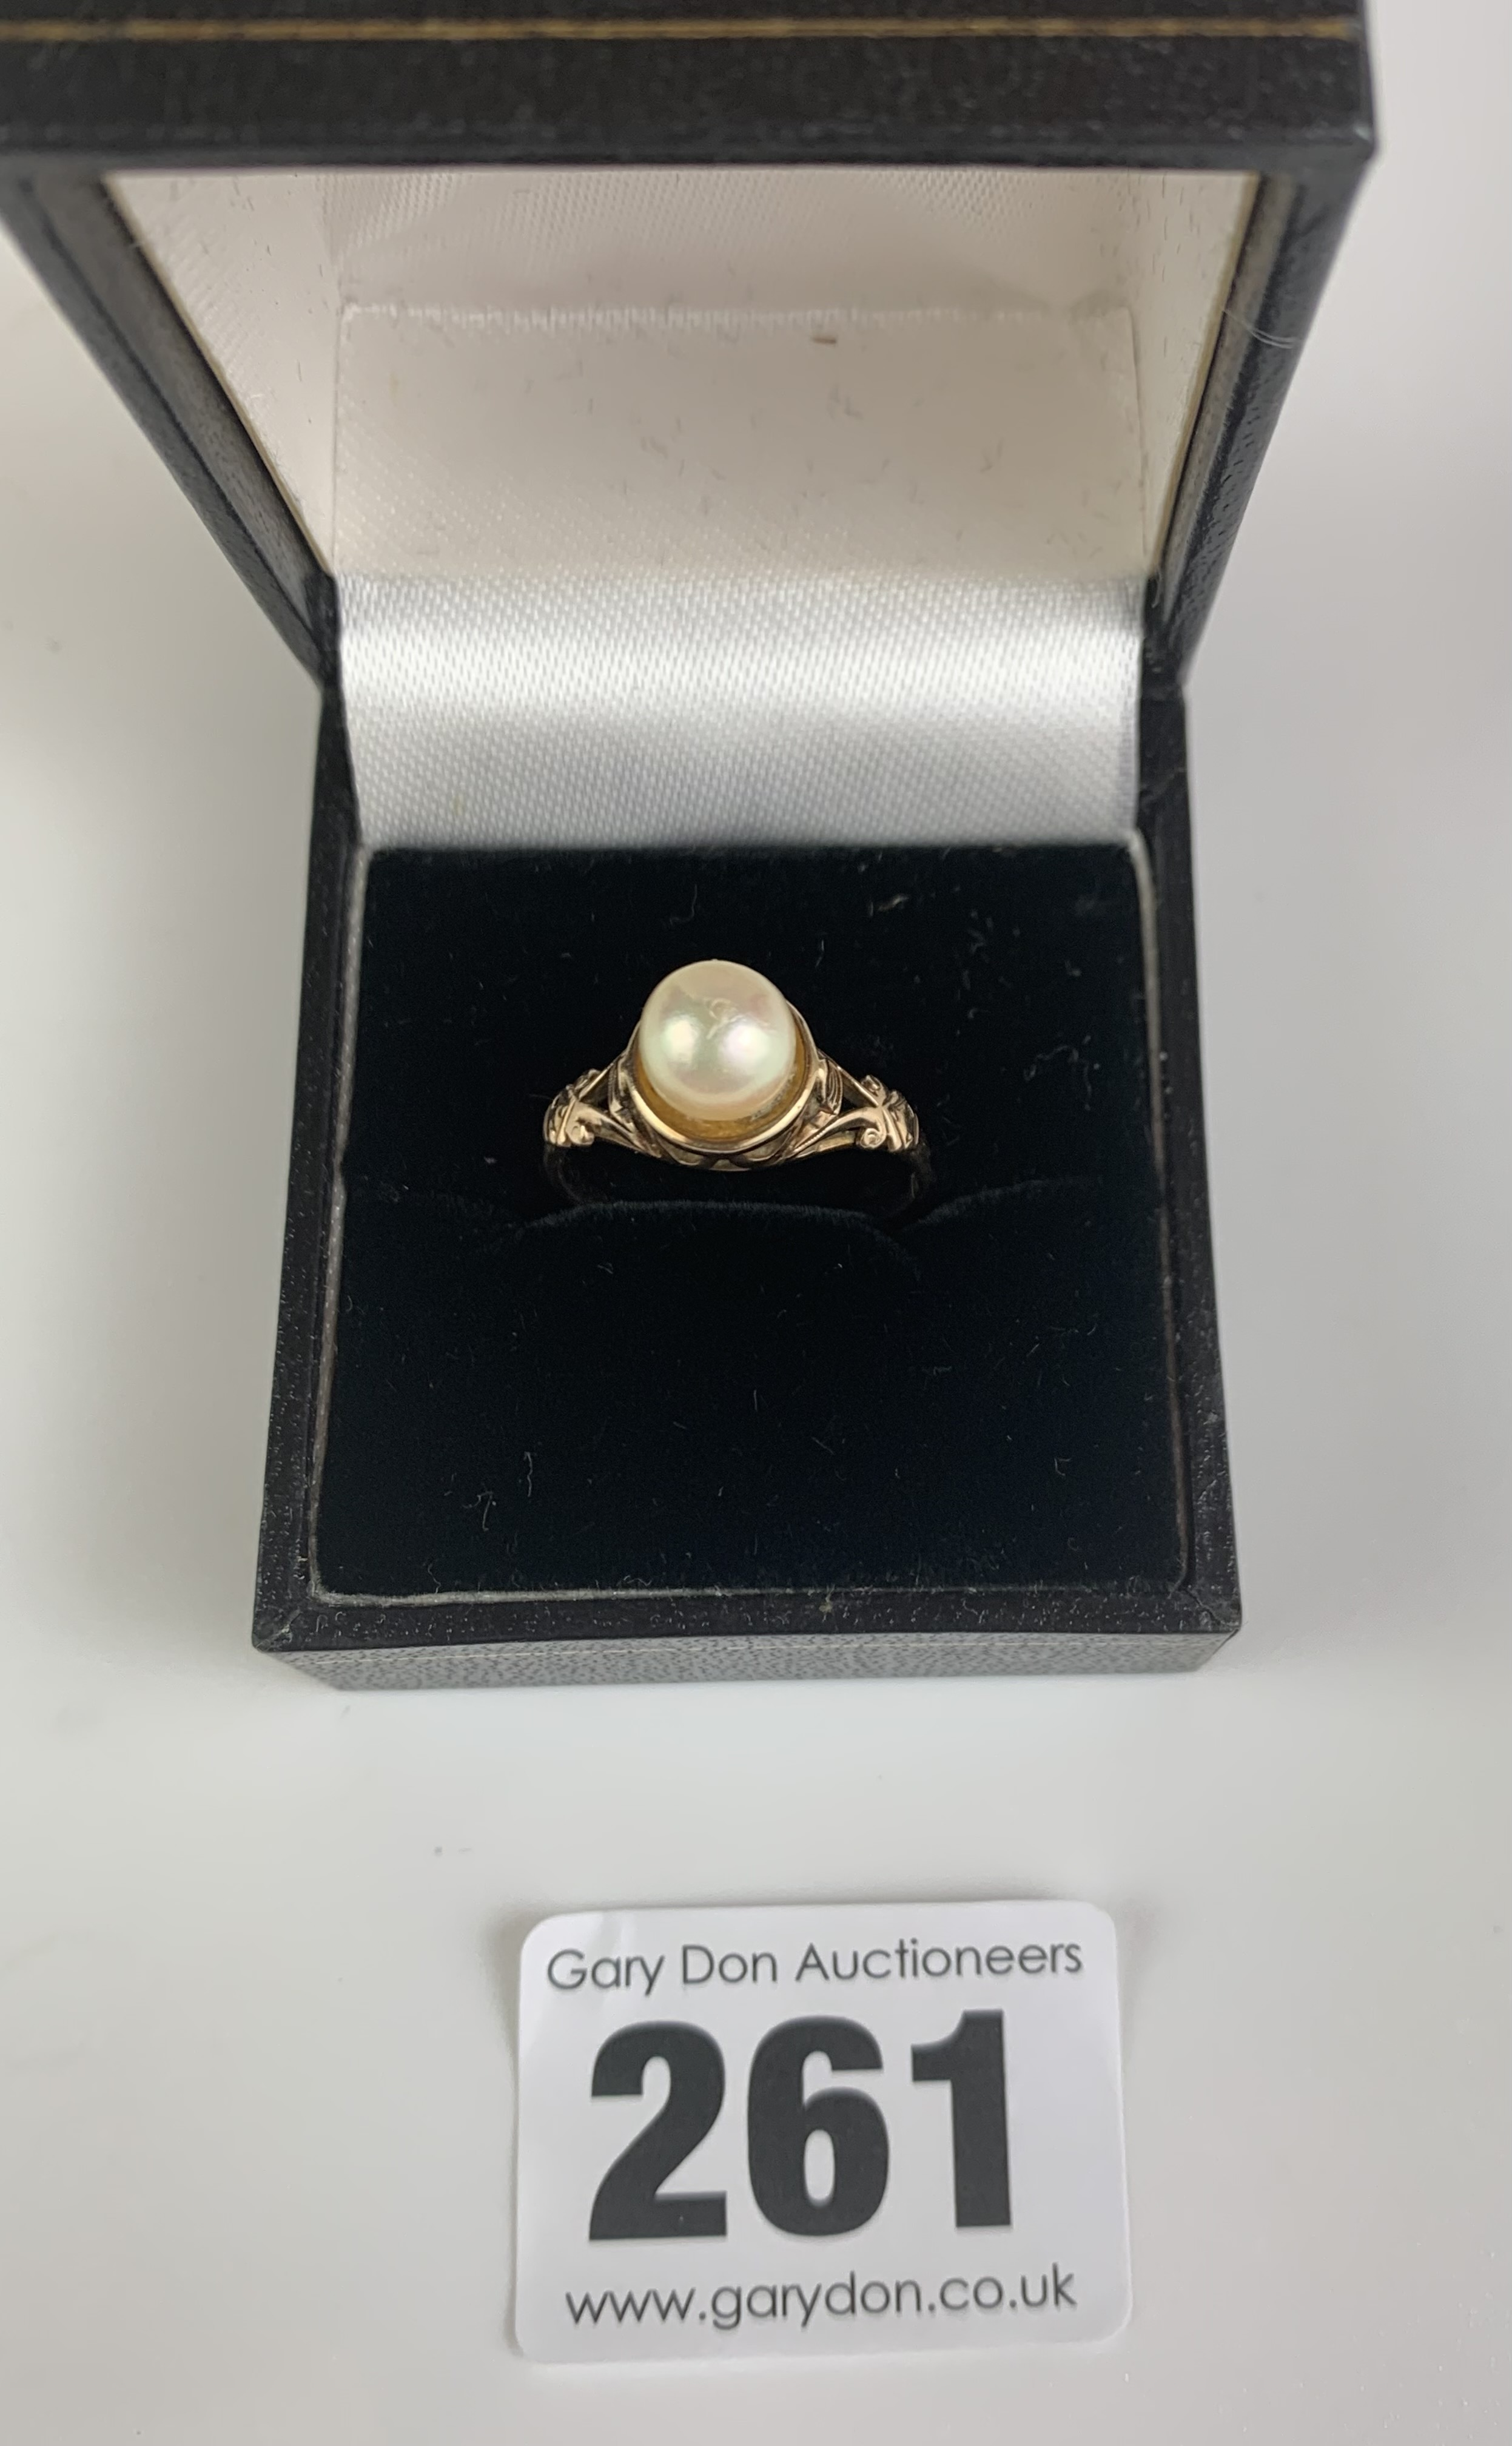 9k gold and pearl ring, size M, w: 2.4 gms - Image 2 of 6